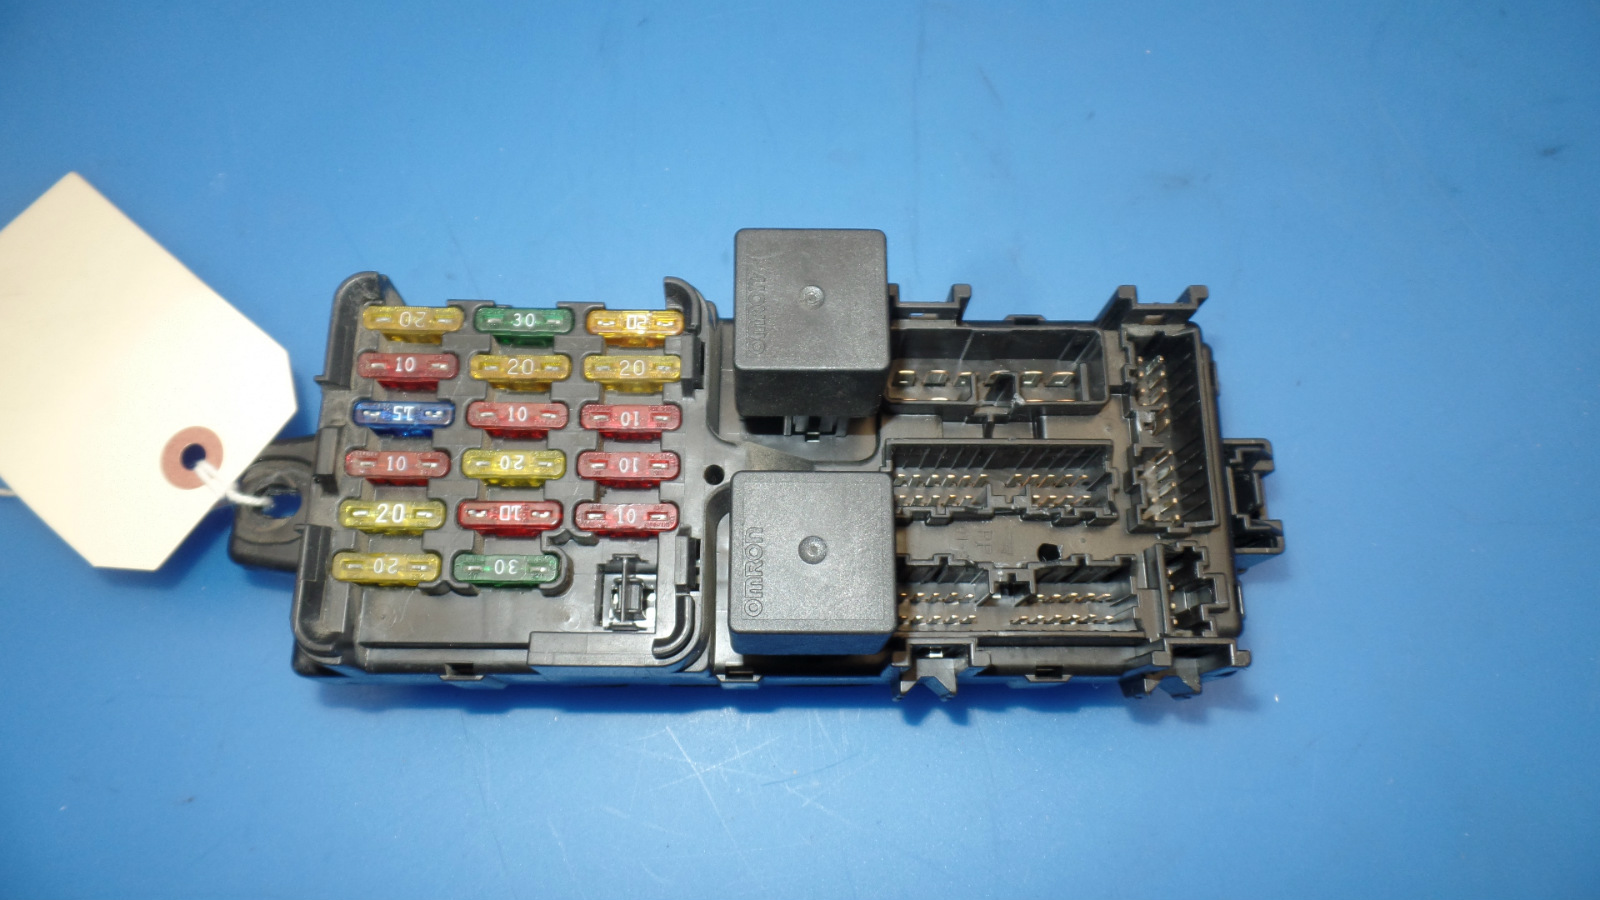 95 99 mitsubishi eclipse oem in dash fuse box with fuses and relays 1 ebay 95 Eclipse GSX 96 Eclipse